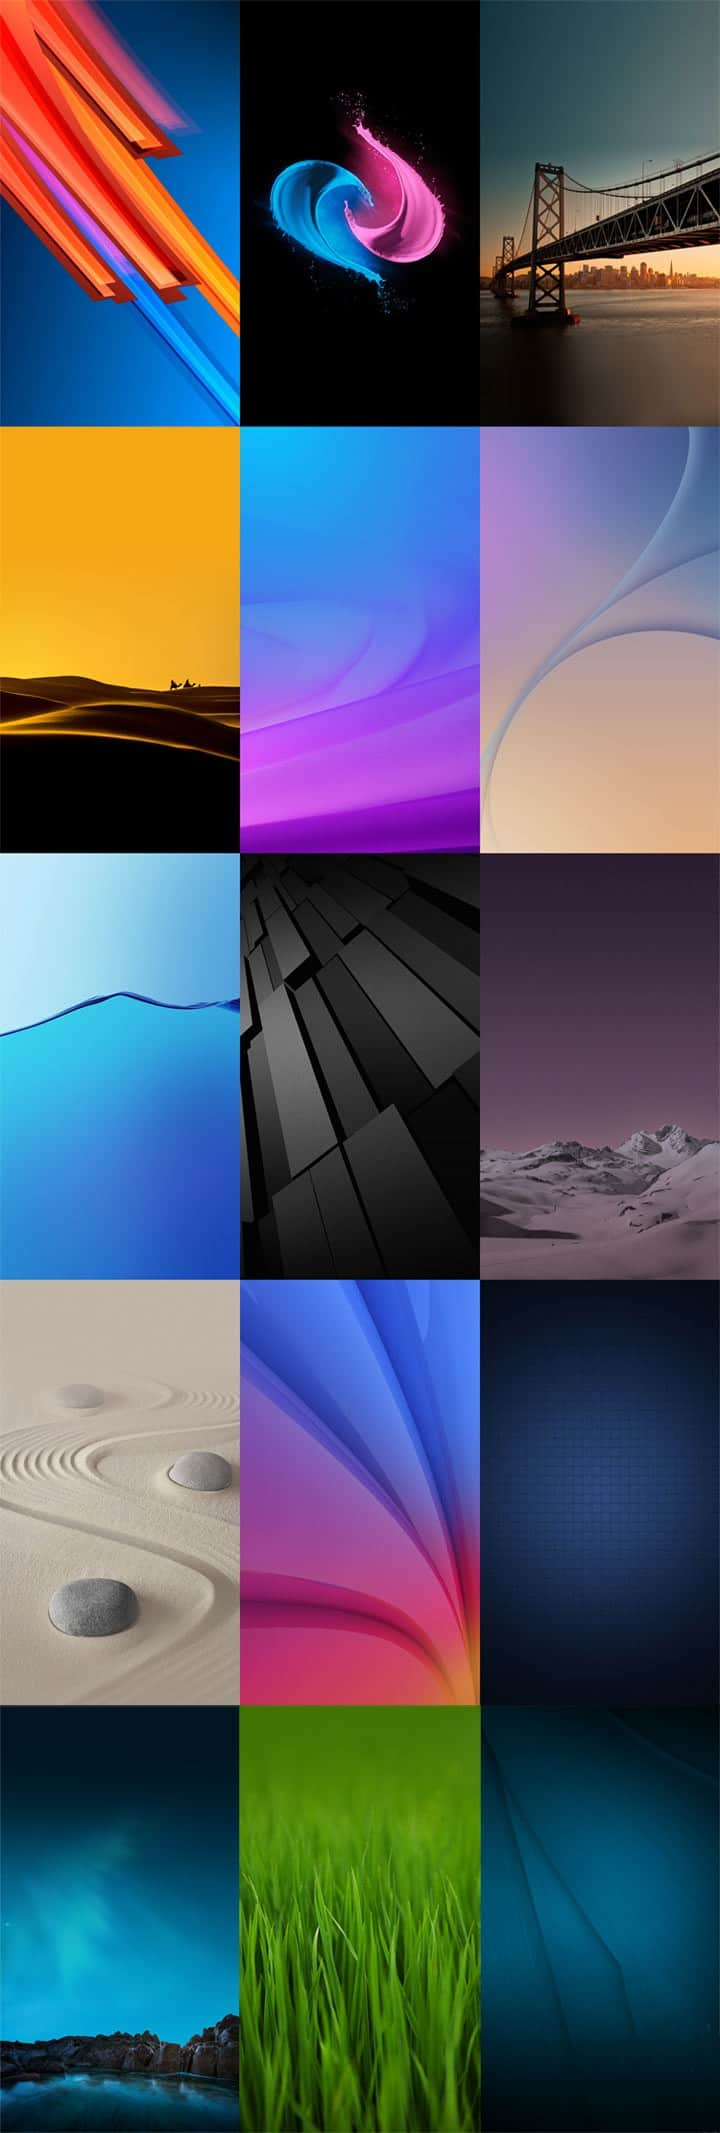 Vivo X5 Pro Stock Wallpapers 1